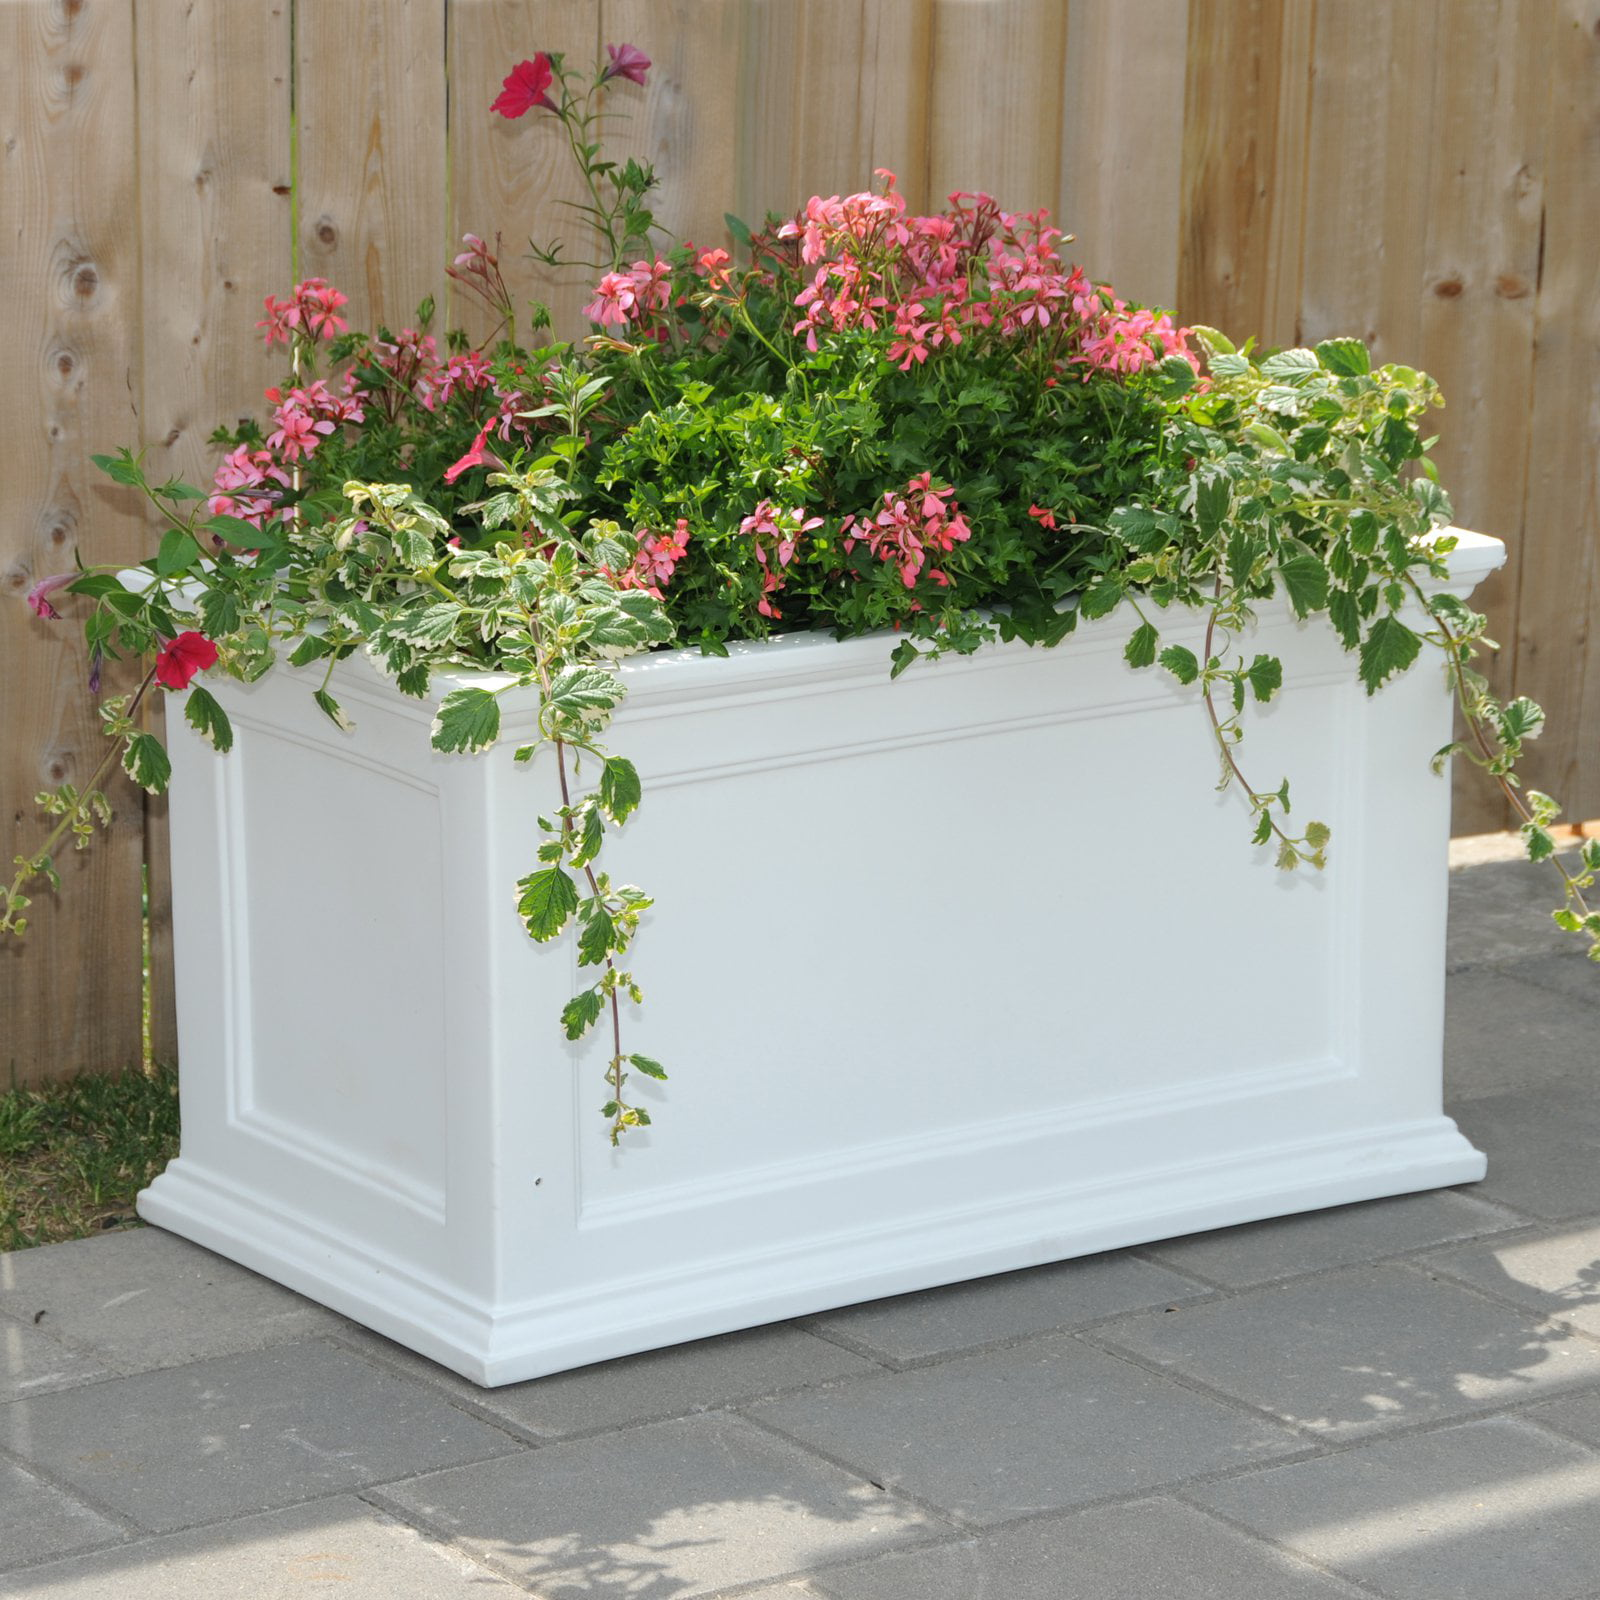 Fairfield Patio Planter 20x36 White by Mayne Inc.